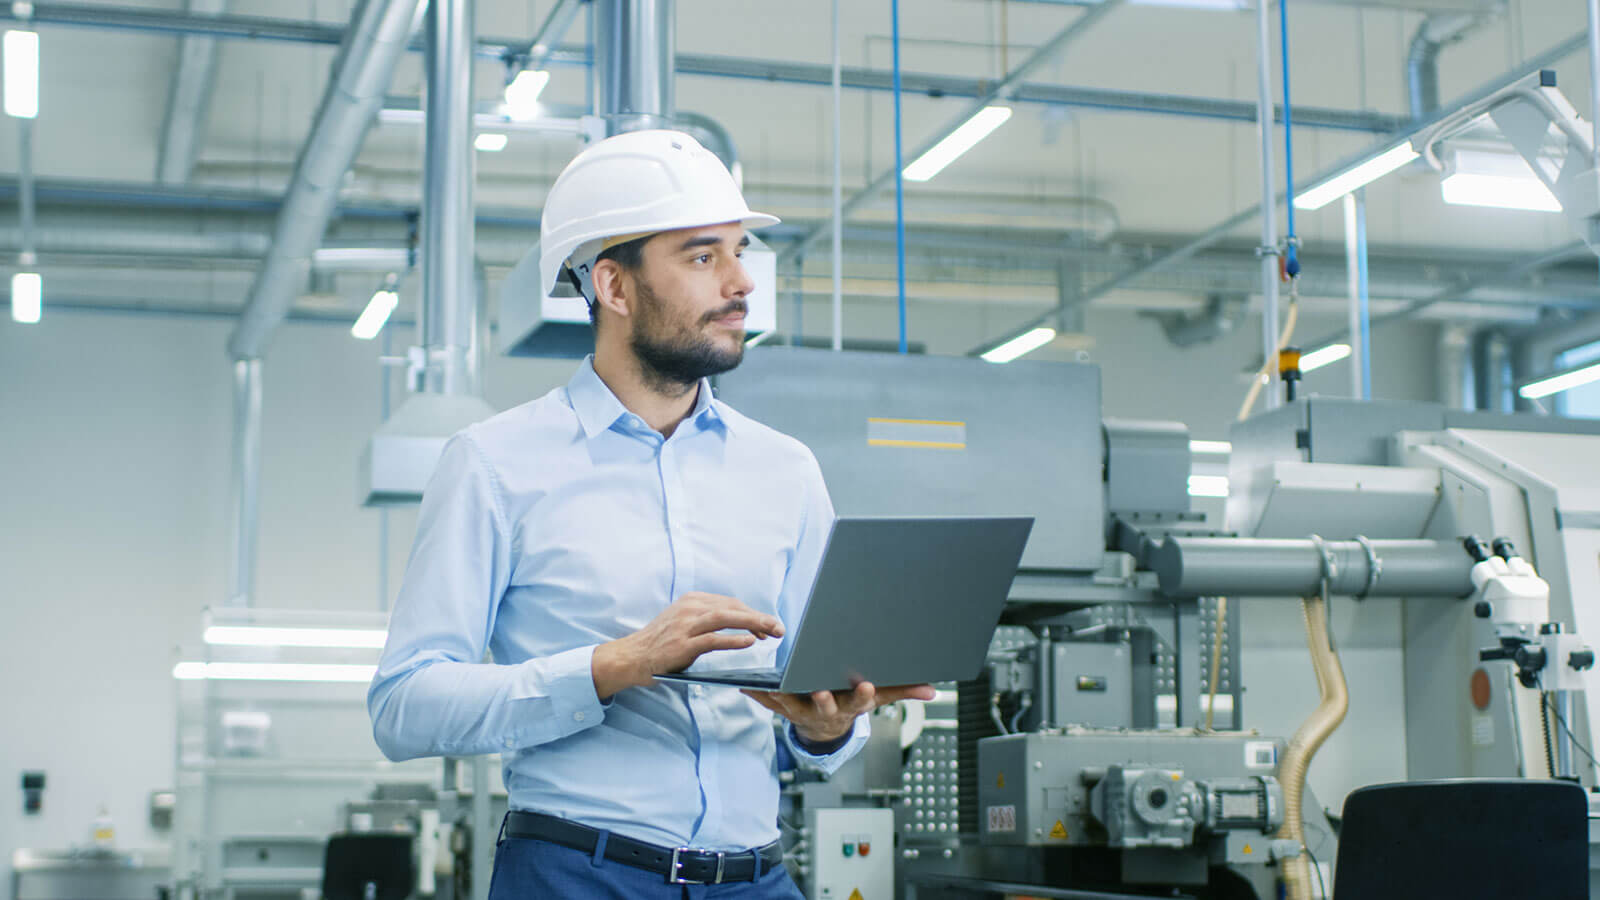 Four Ways ERP Can Help Manufacturing Processes Post-COVID